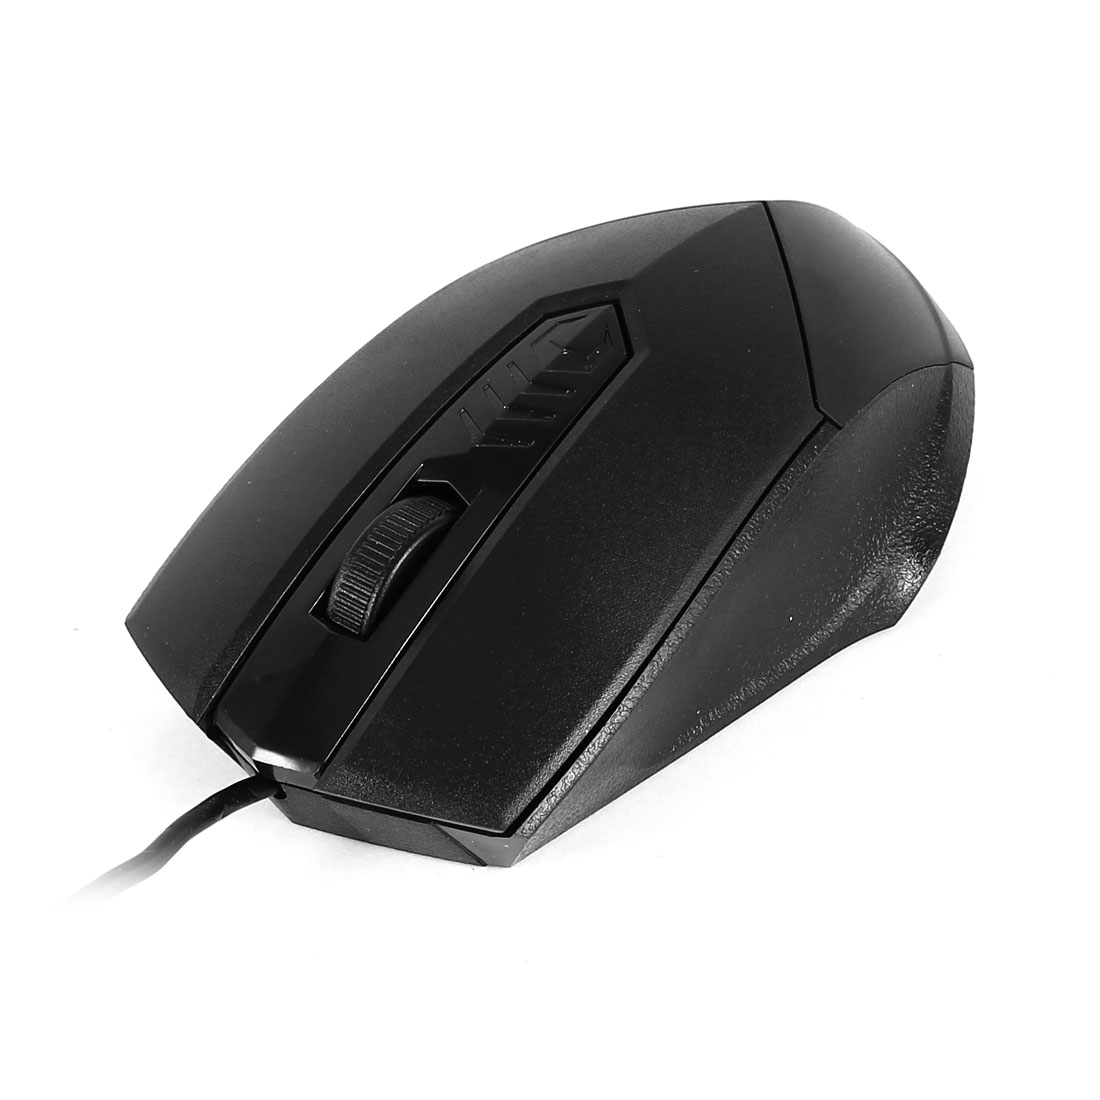 Black 800/1600DPI USB 2.0 3D Scroll Wheel Optical Mouse Mice for Computer